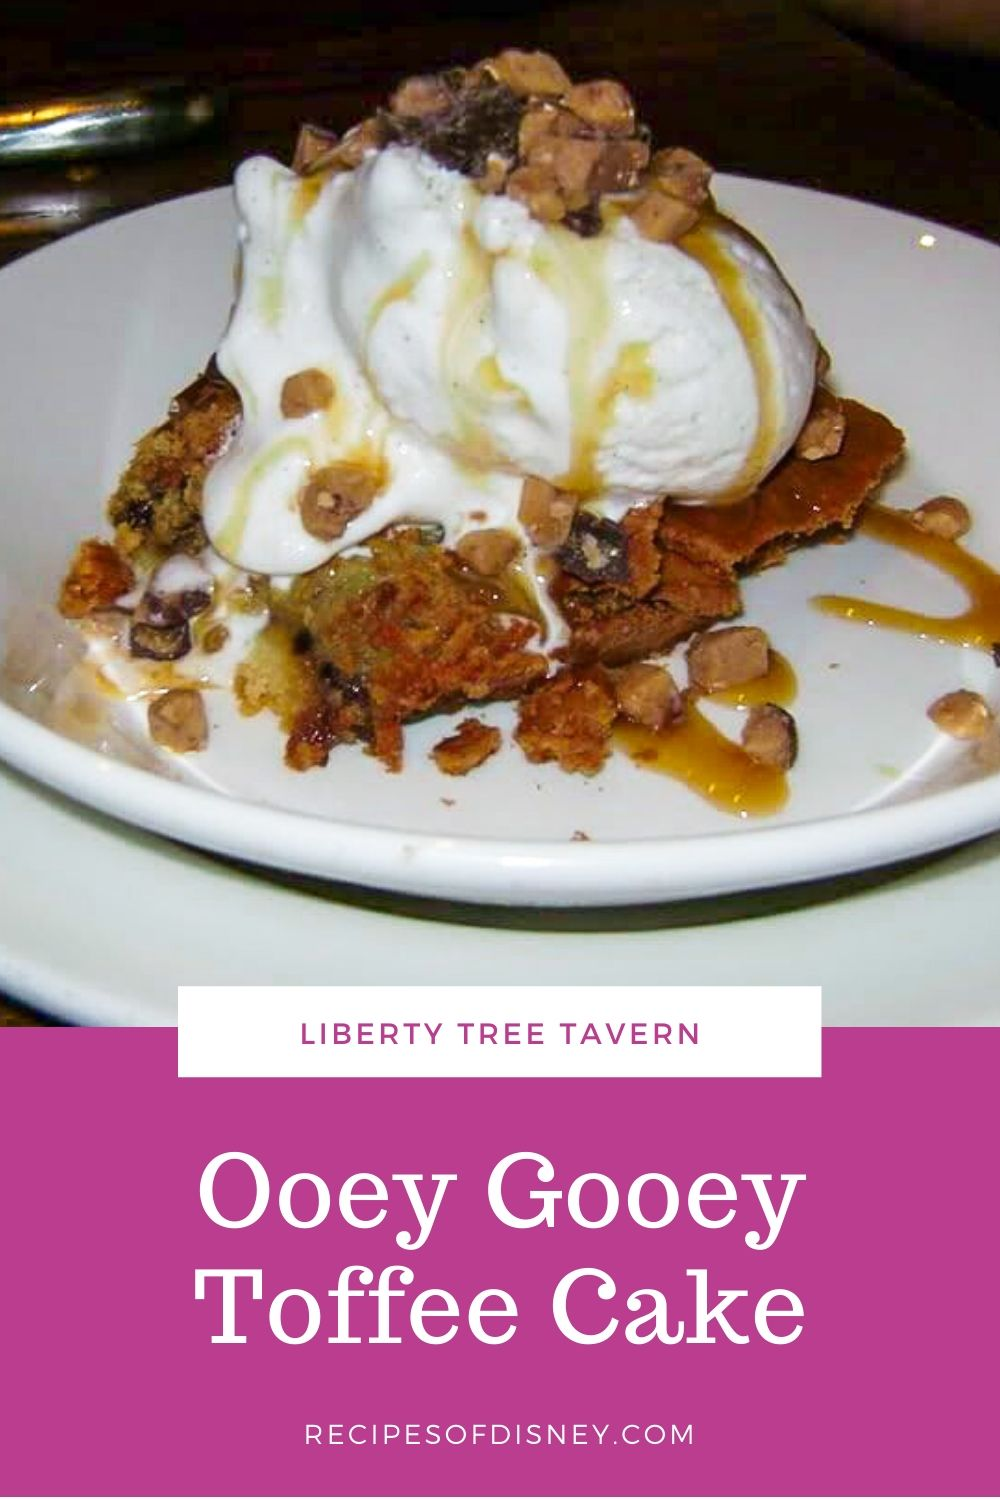 Ooey Gooey Toffee Cake {Liberty Tree Tavern}